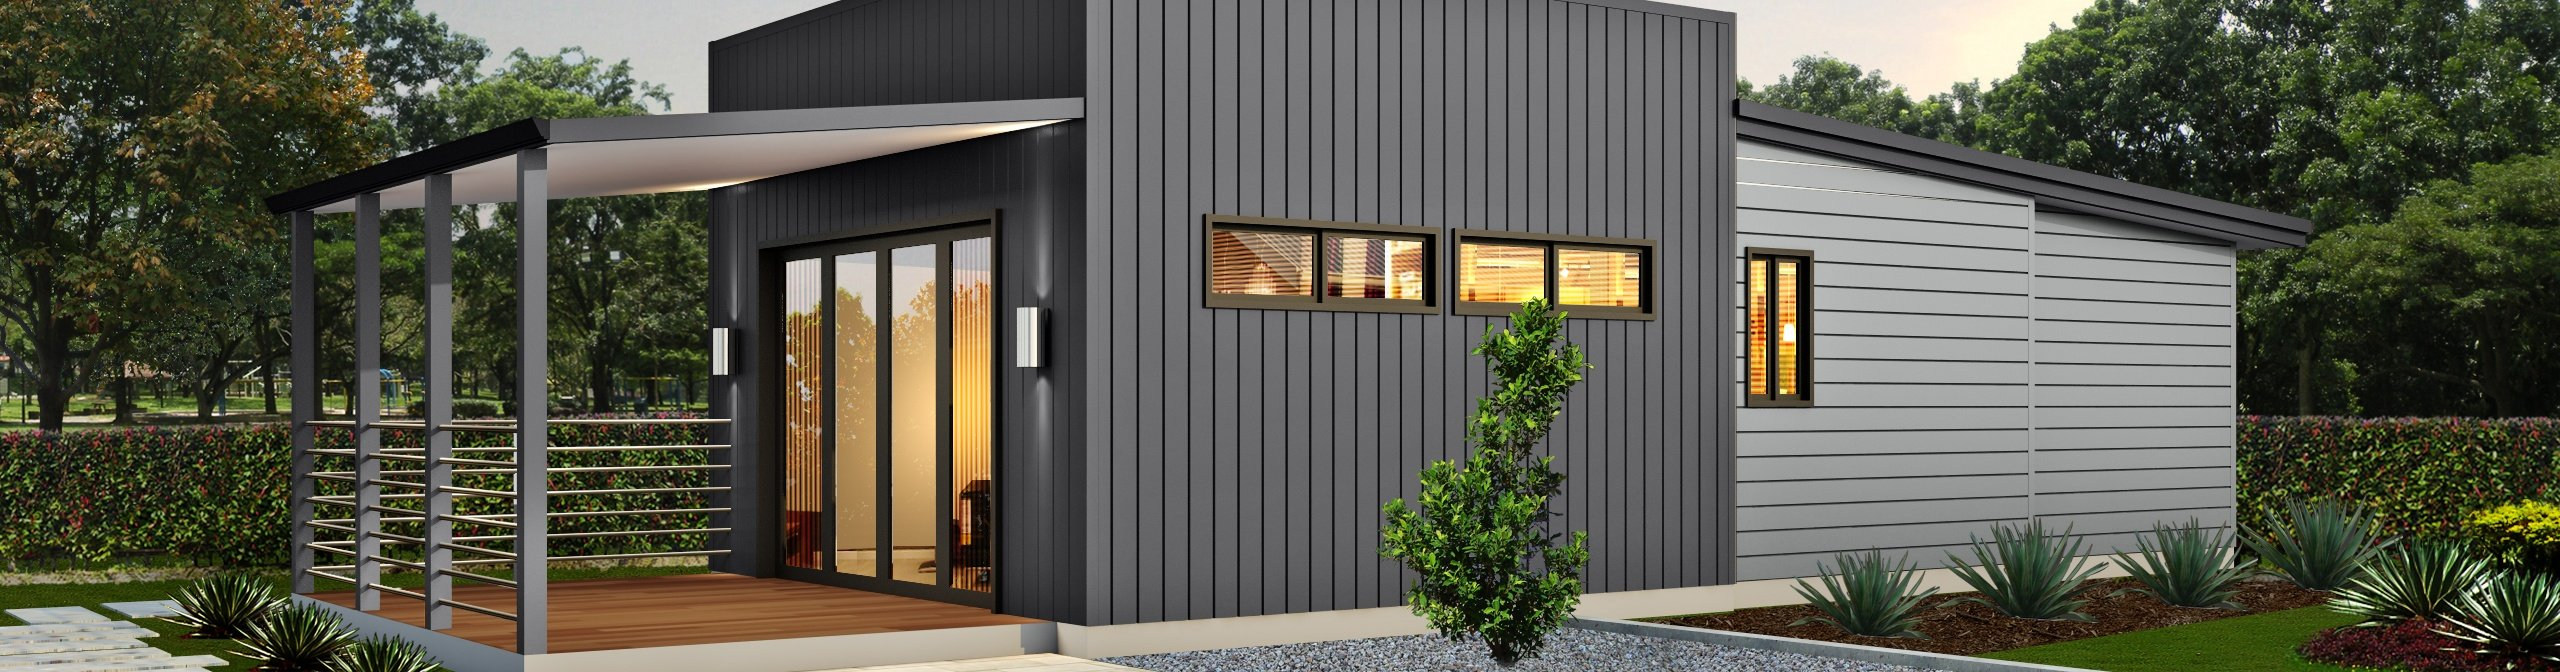 Evoke the salt box modern style home with black exterior and front verandah | Modular Homes Perth